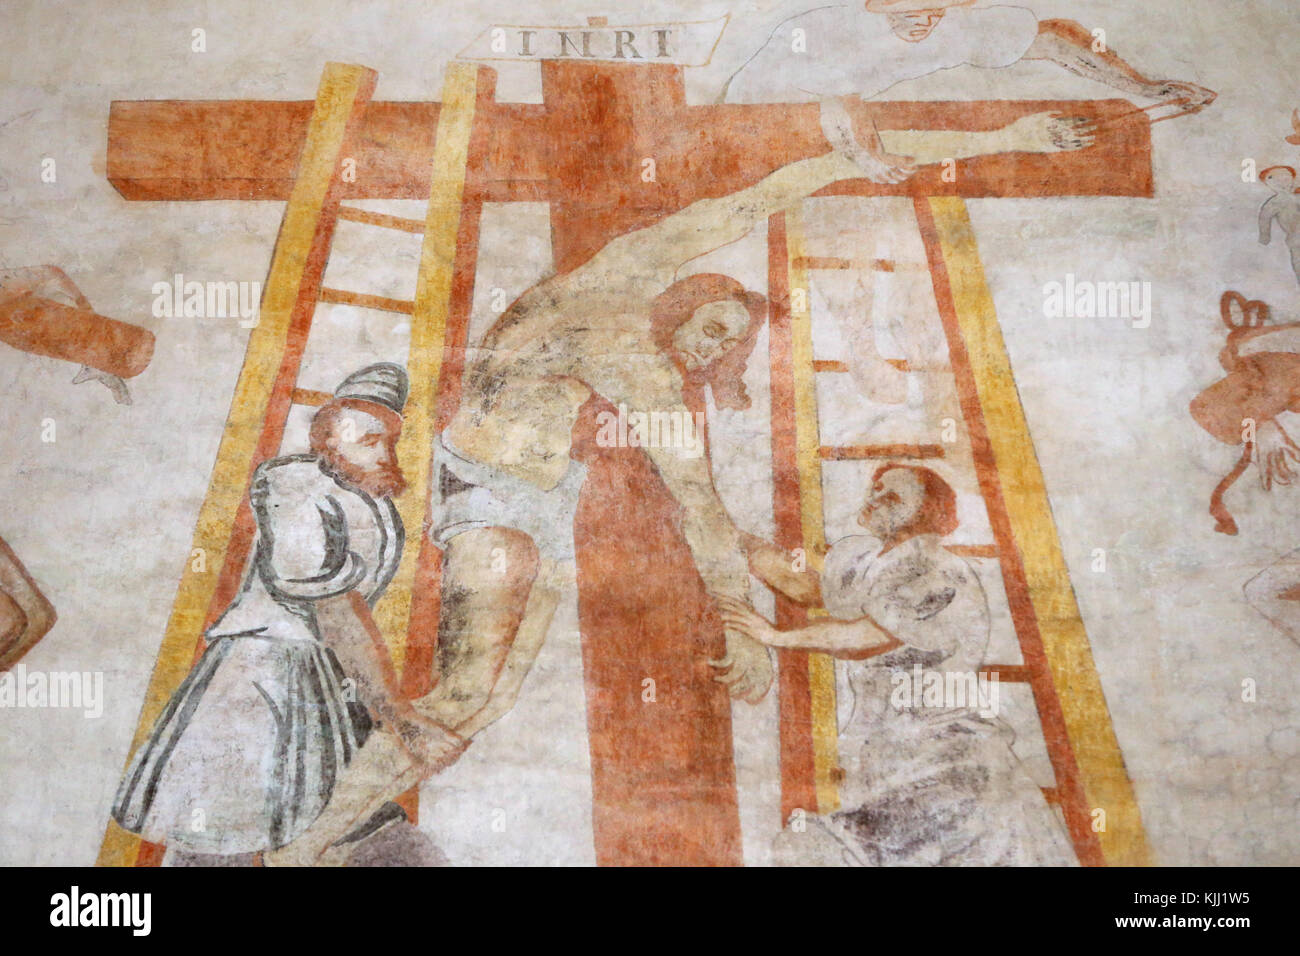 Vault de Lugny church.  16th century wall painting. Christ in his passion. Jesus is taken down from the cross.  - Stock Image